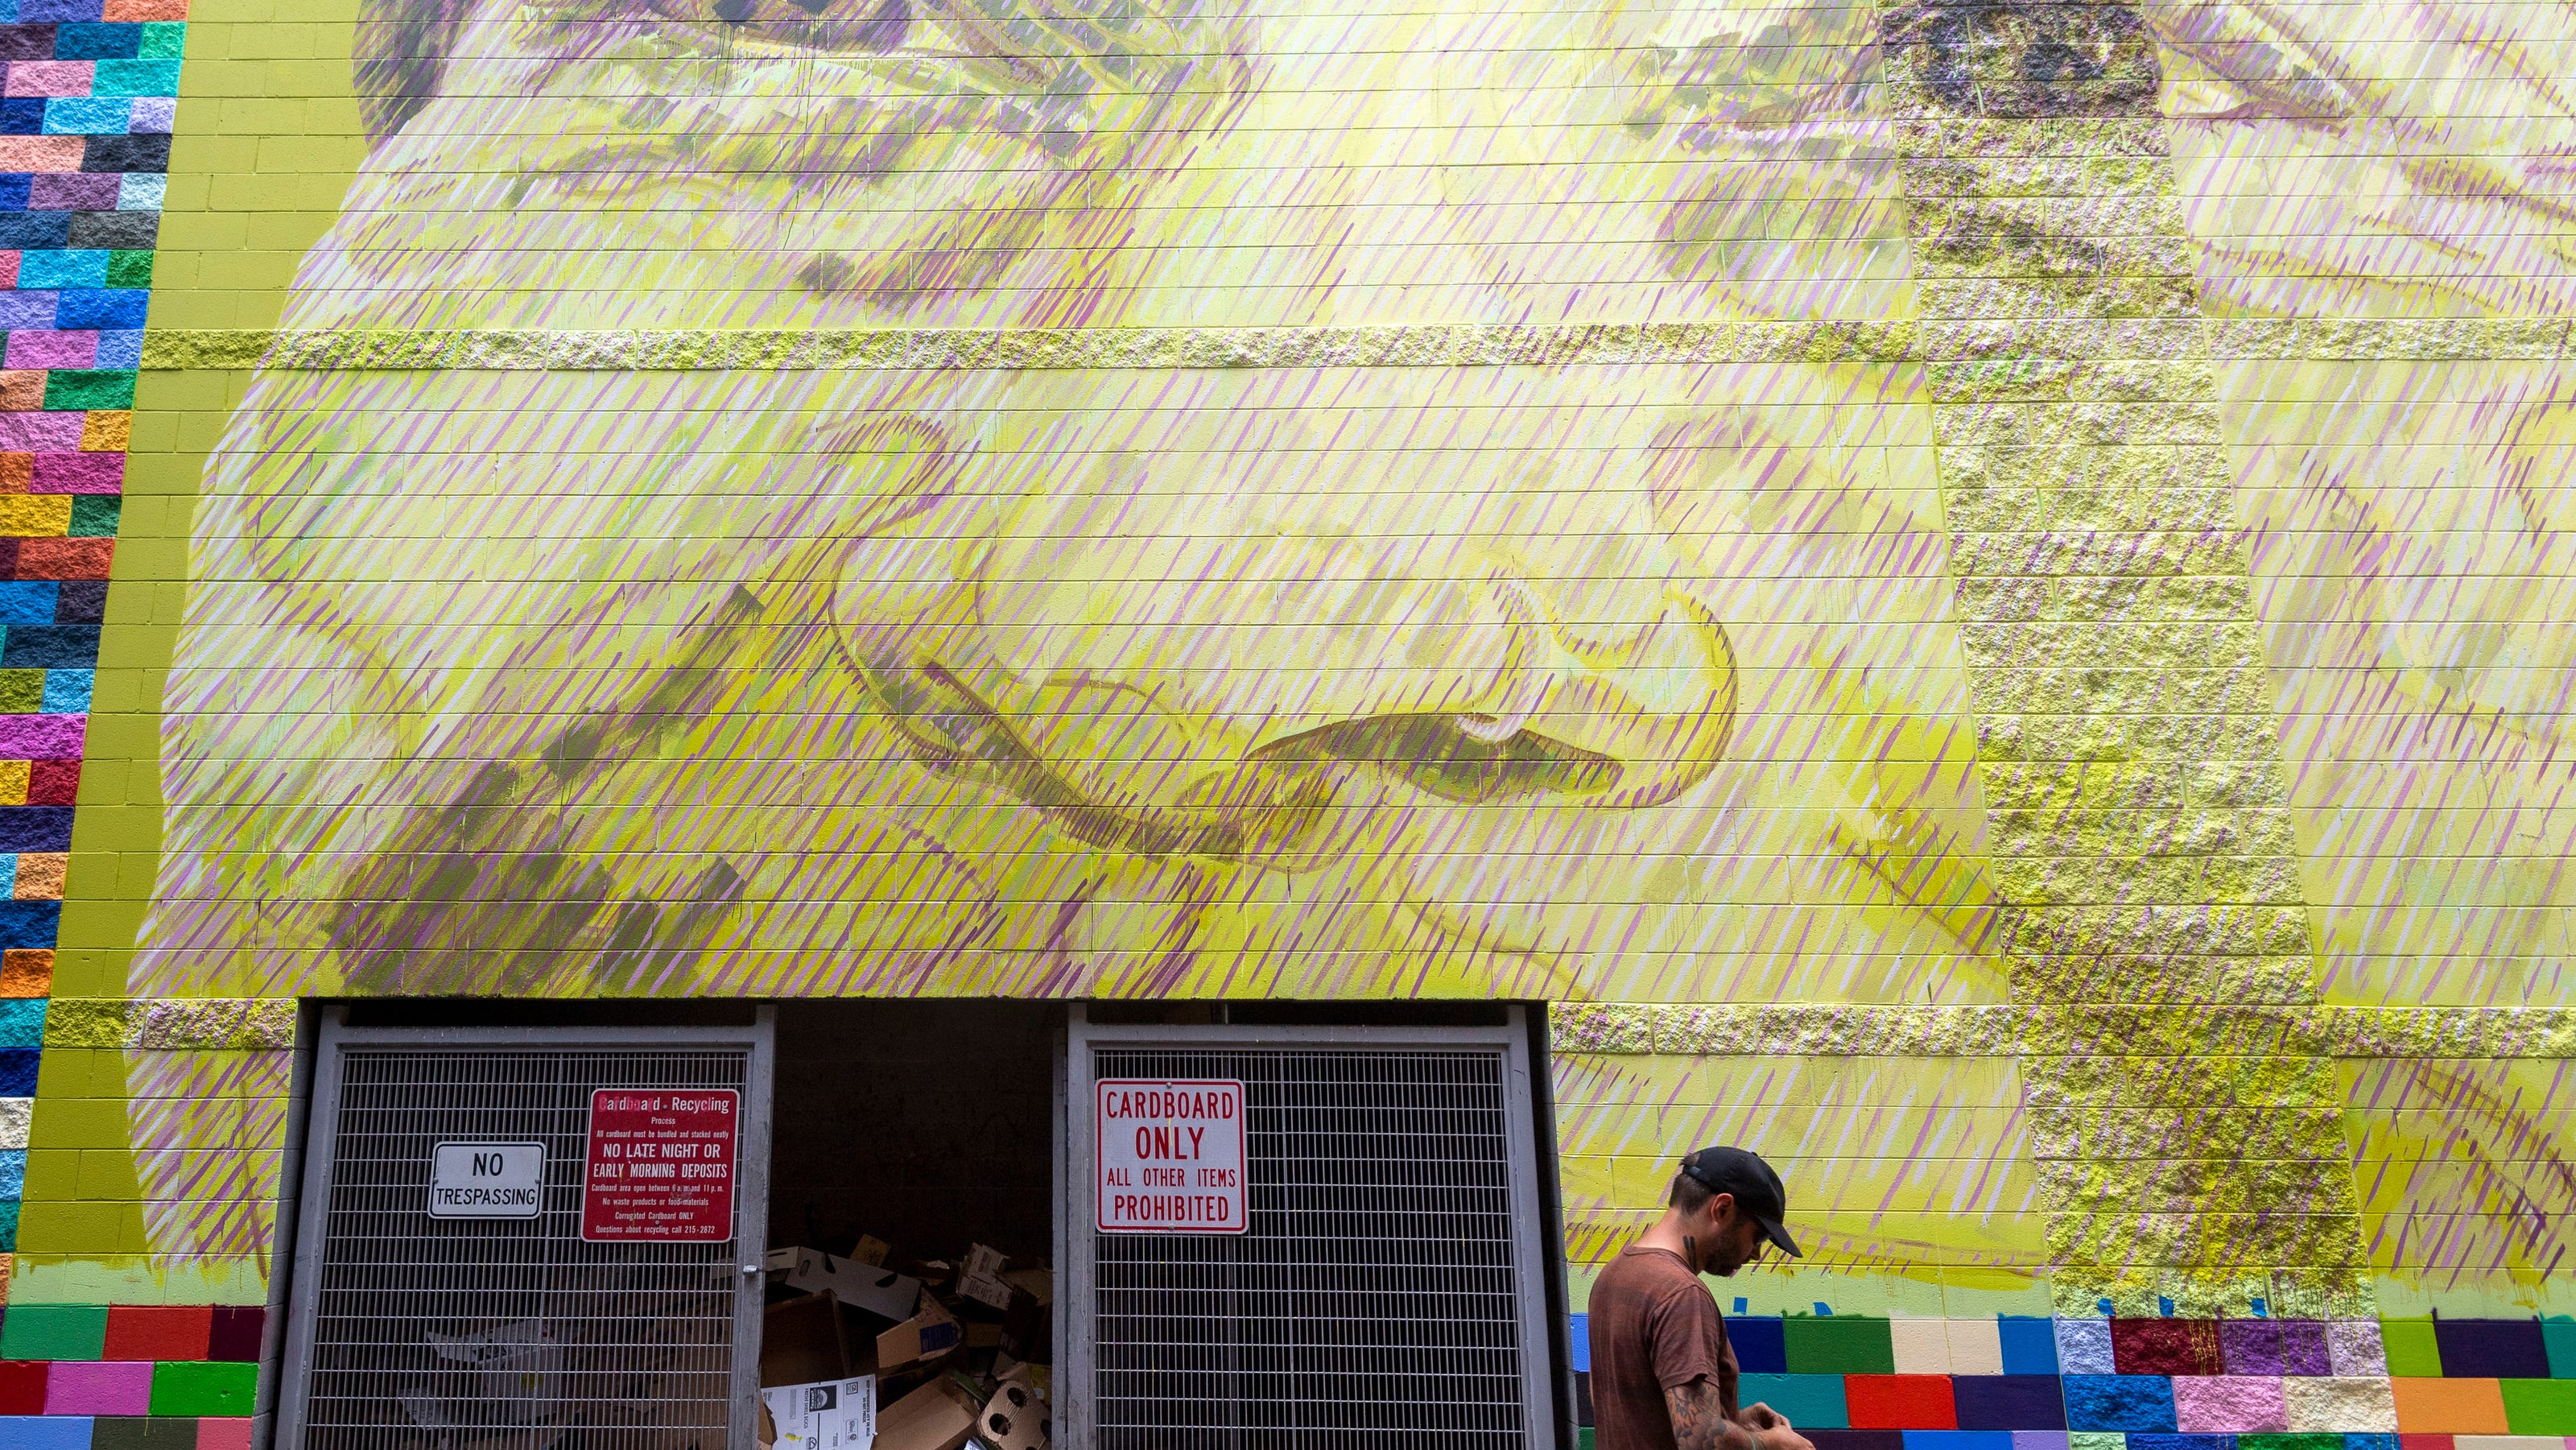 It's long, it's tall and it's public art in a Knoxville alley: New mural shows 6 faces